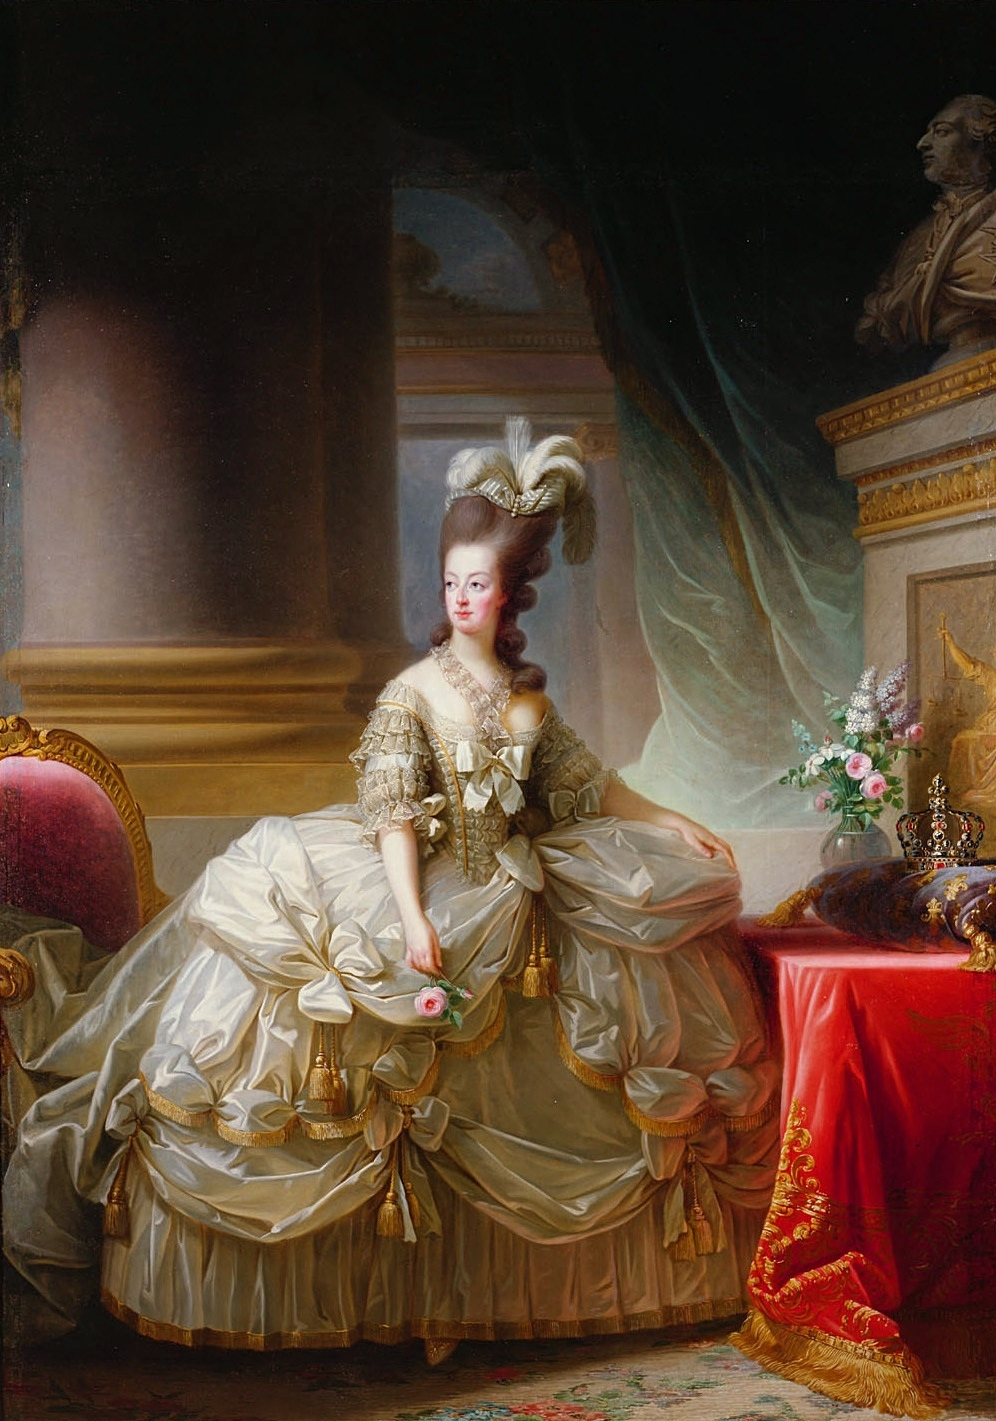 women s fashion during and after the french revolution 1790 to surprisingly marie antoinette was the one who first popularized the look although she is most remembered for wearing gowns that neoclassicism was supposed